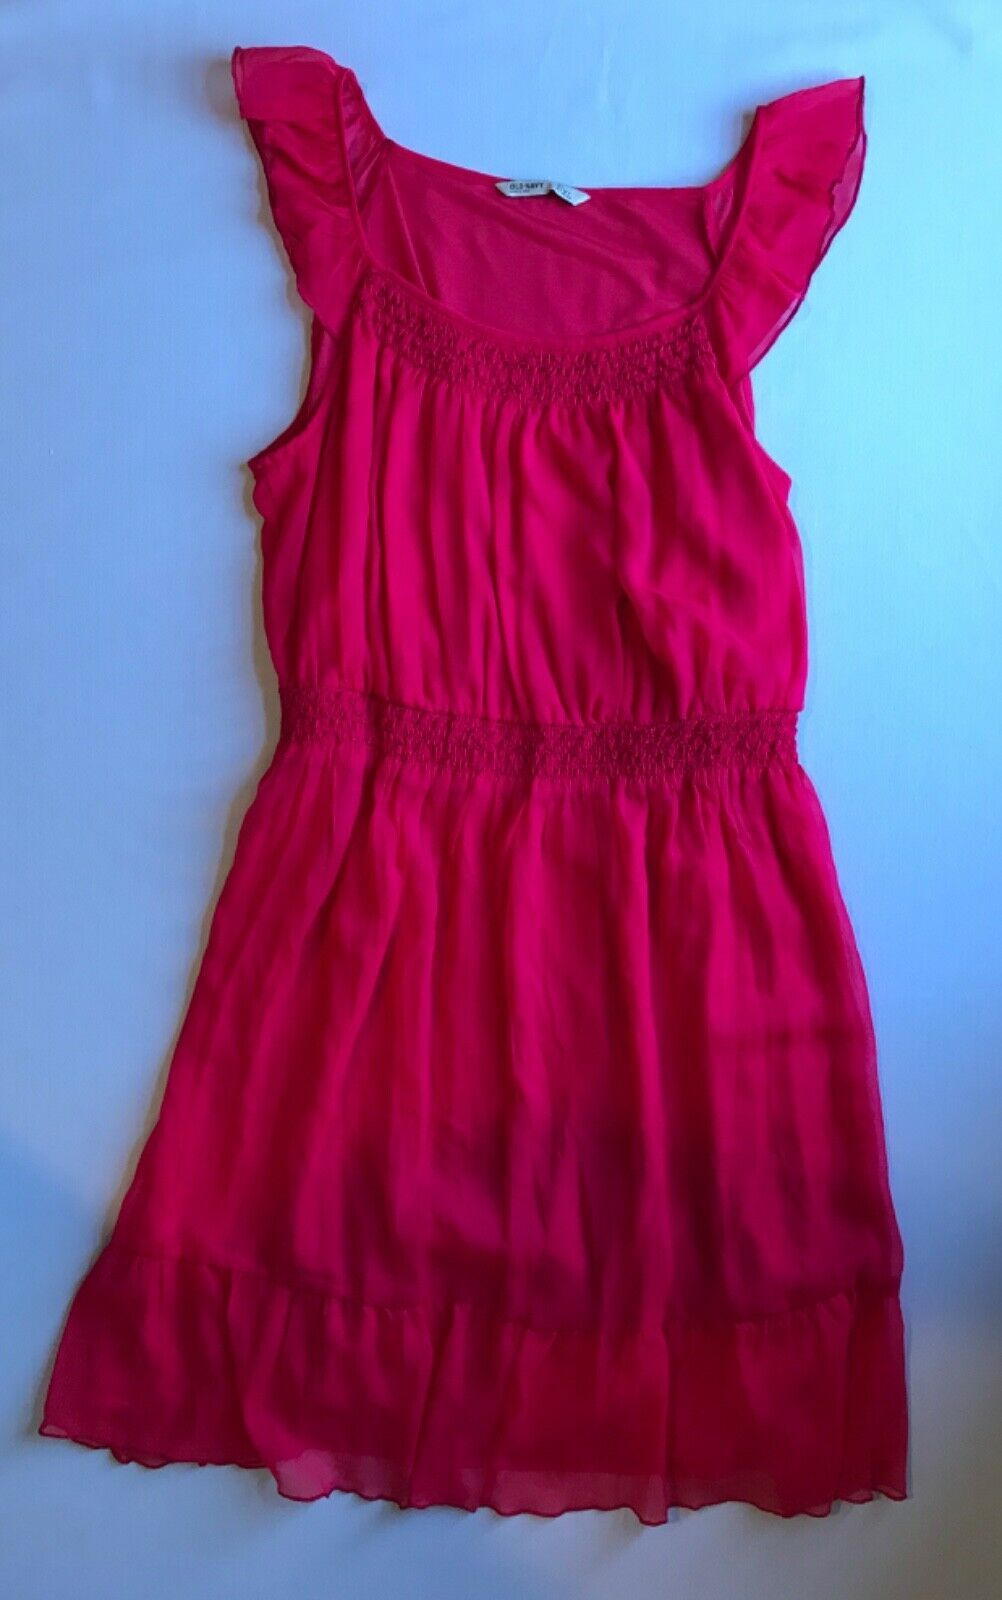 Primary image for Flutter Sleeve Dress w/ruched neckline and waist in XL by OLD NAVY